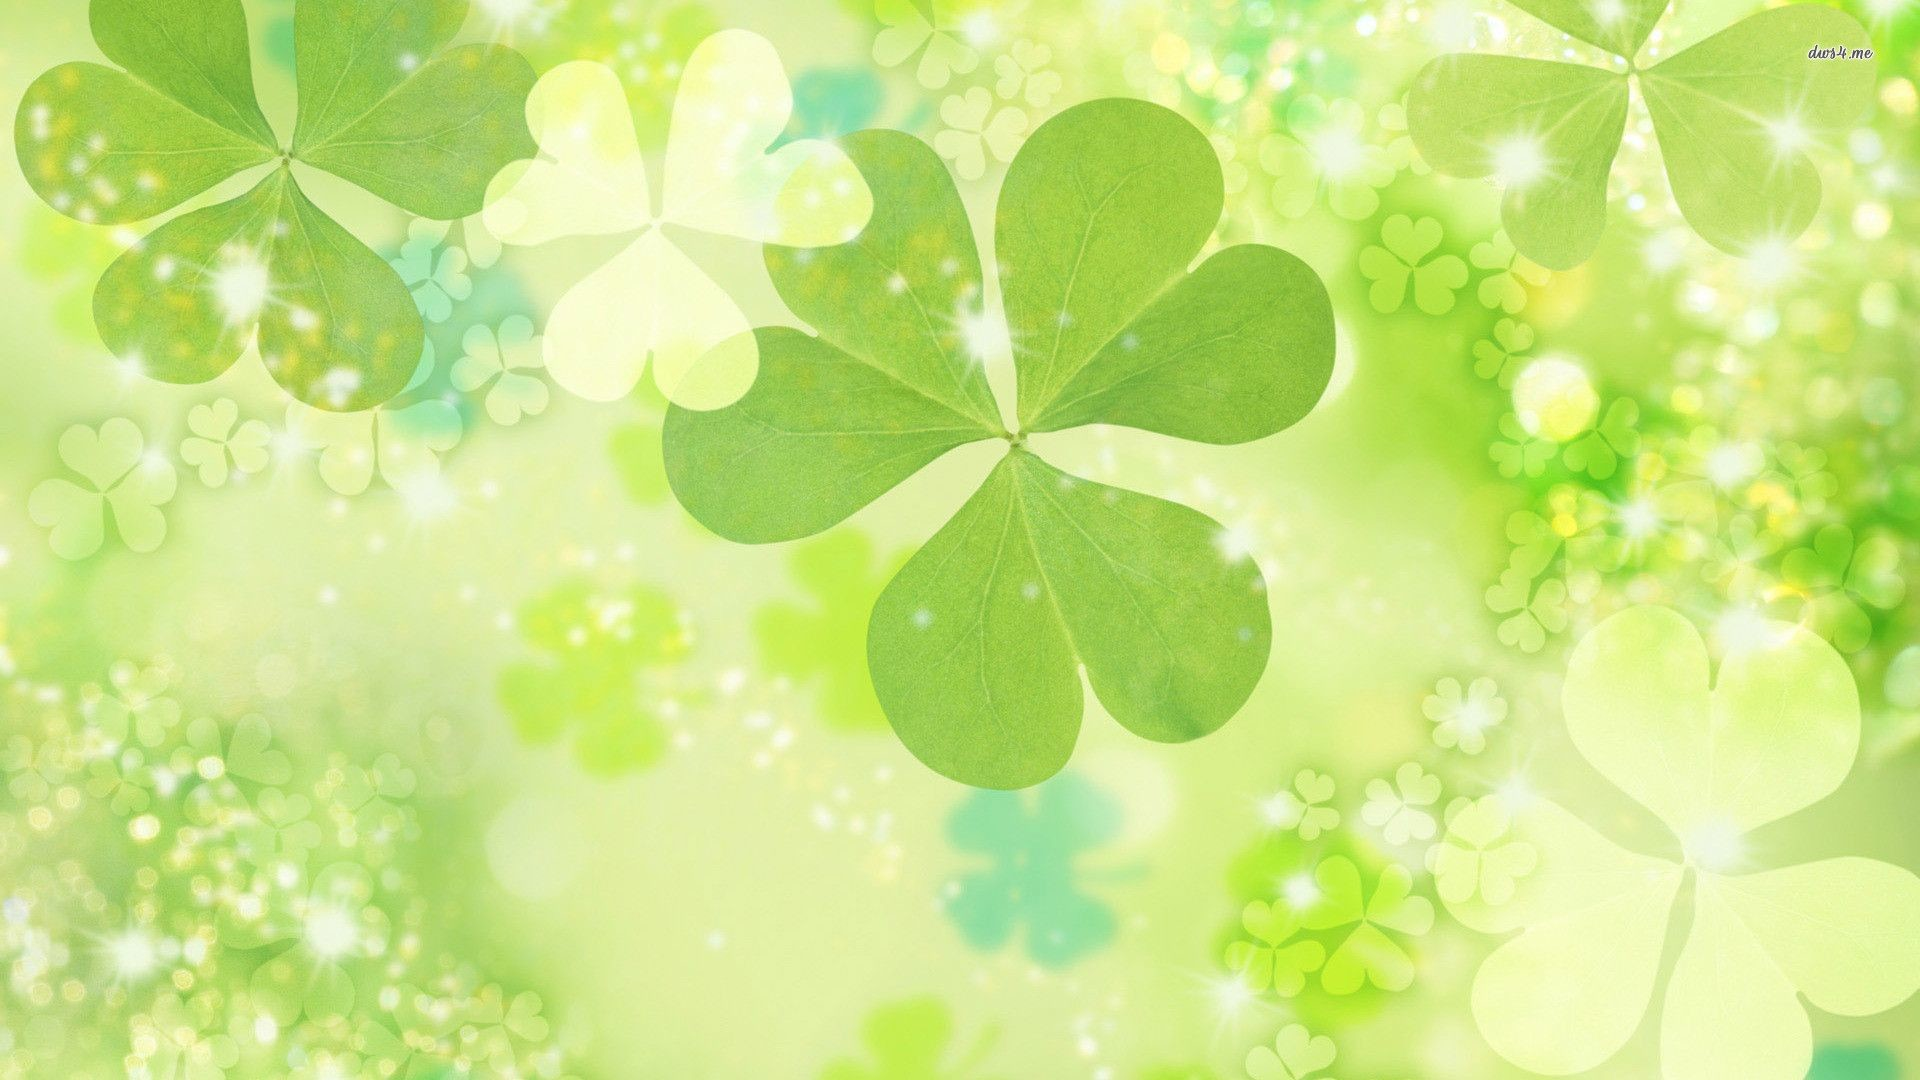 Four Leaf Clover Wallpapers 51 pictures 1920x1080